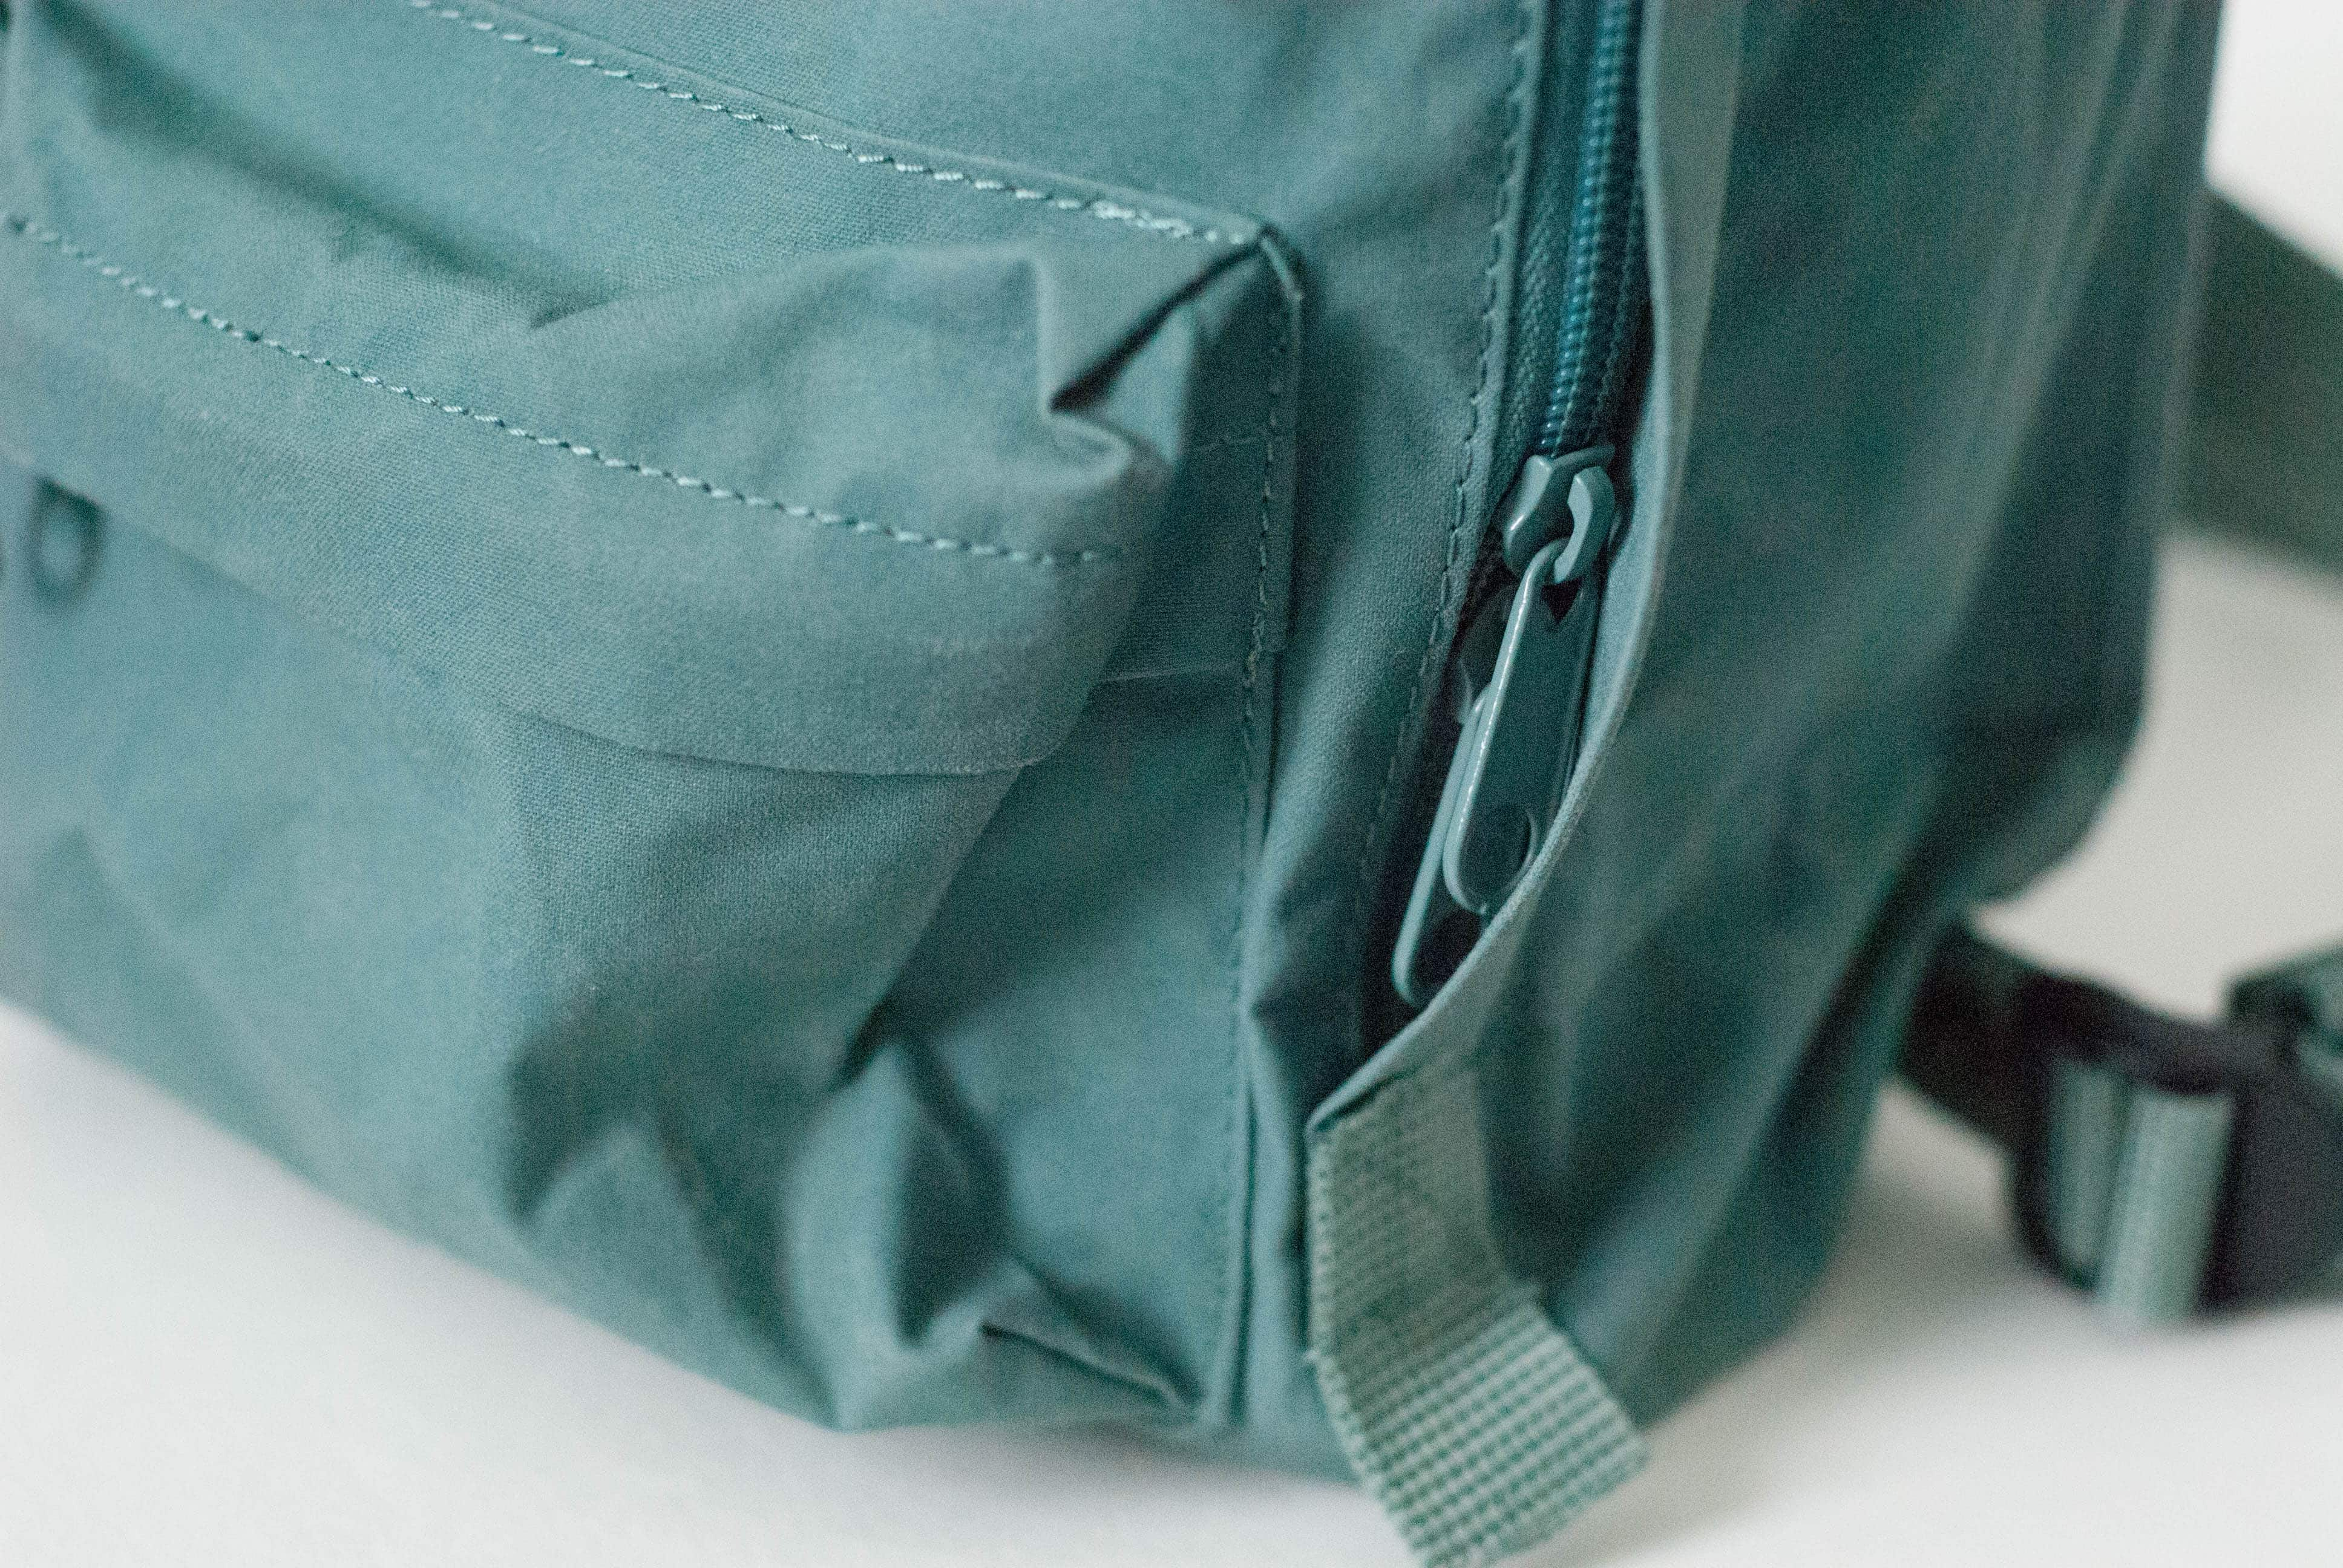 Fjallraven Kanken Mini Zipper and Front Pocket Detail